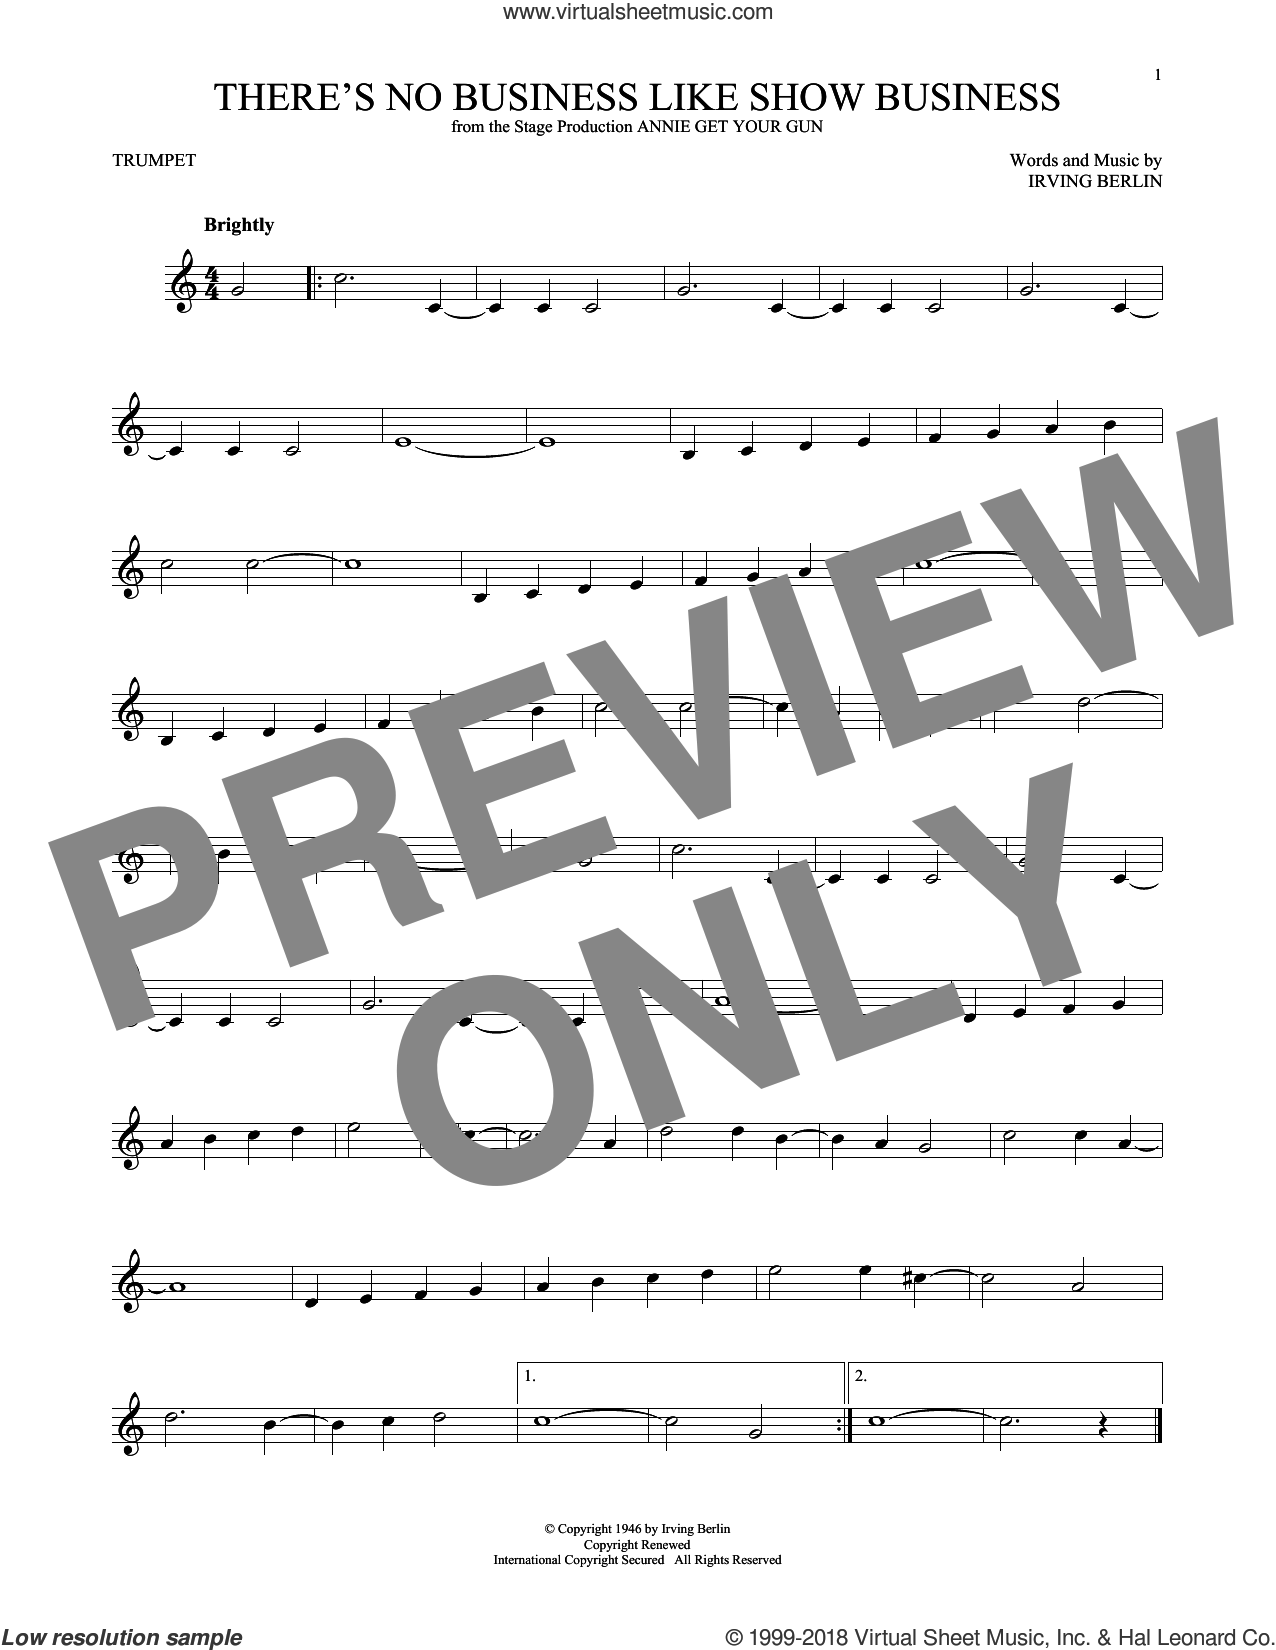 There's No Business Like Show Business sheet music for trumpet solo by Irving Berlin, intermediate skill level